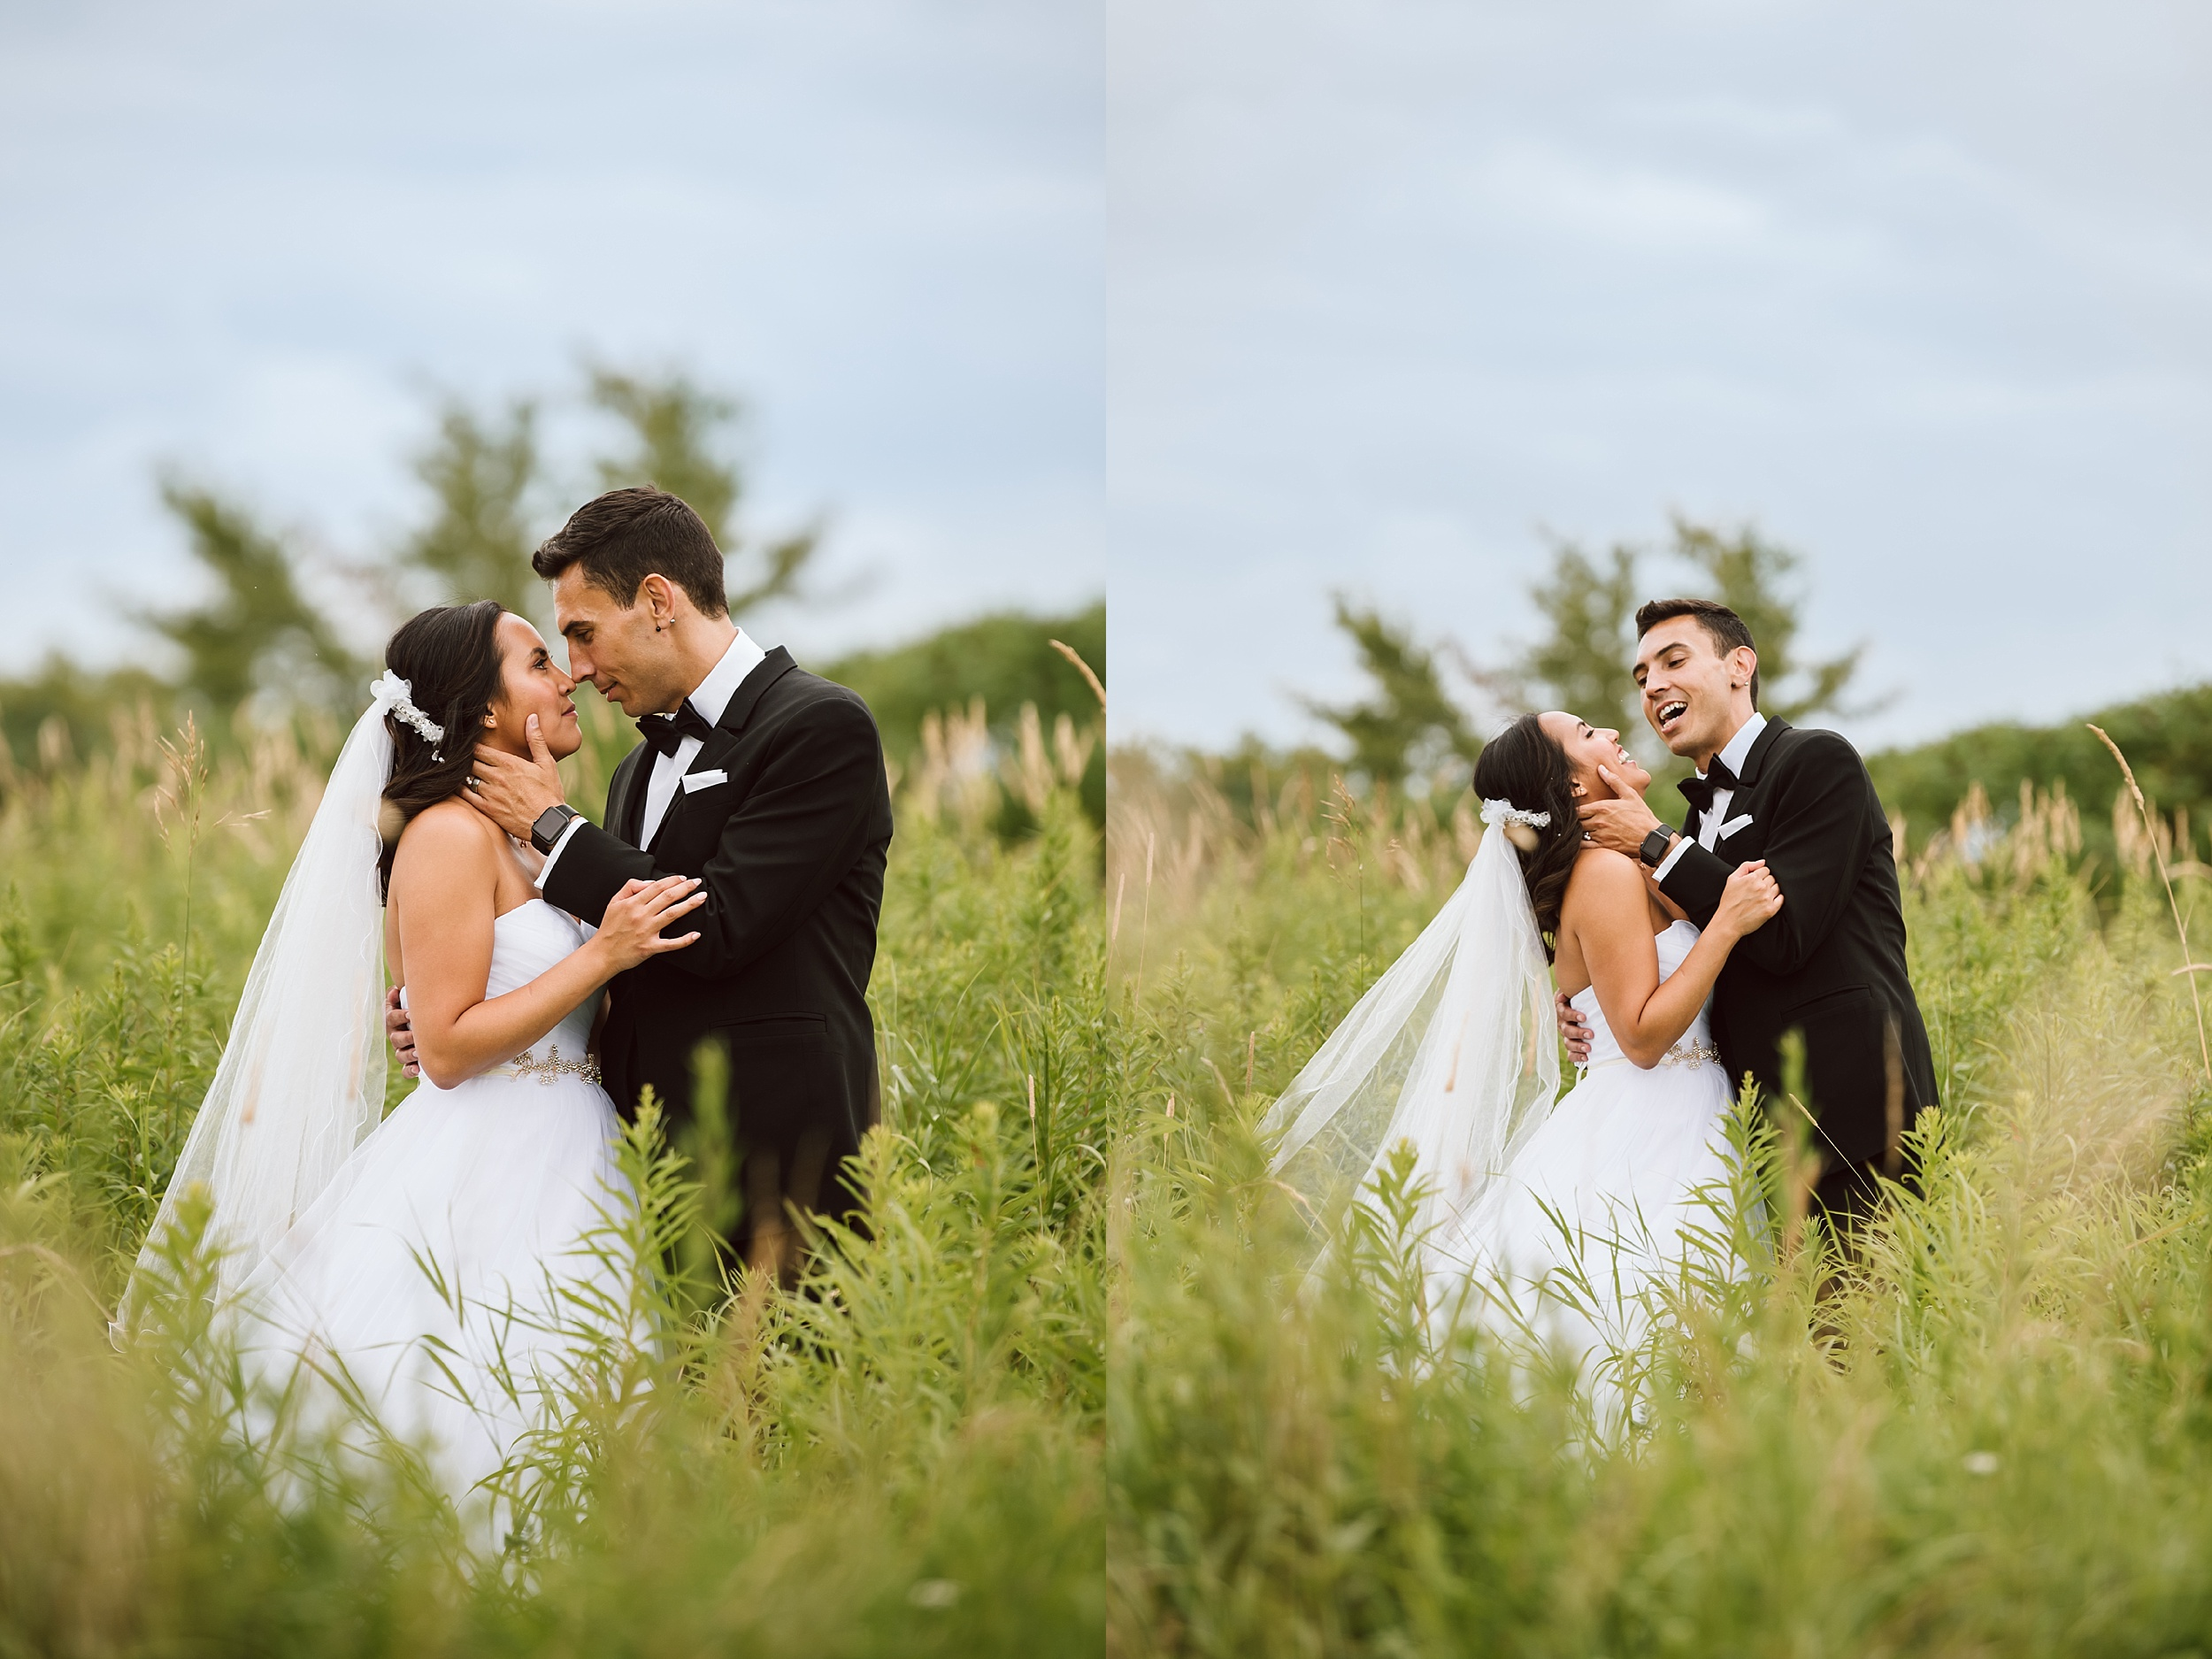 Toronto_Wedding_Photographer_Catholic_Portuguese_0051.jpg